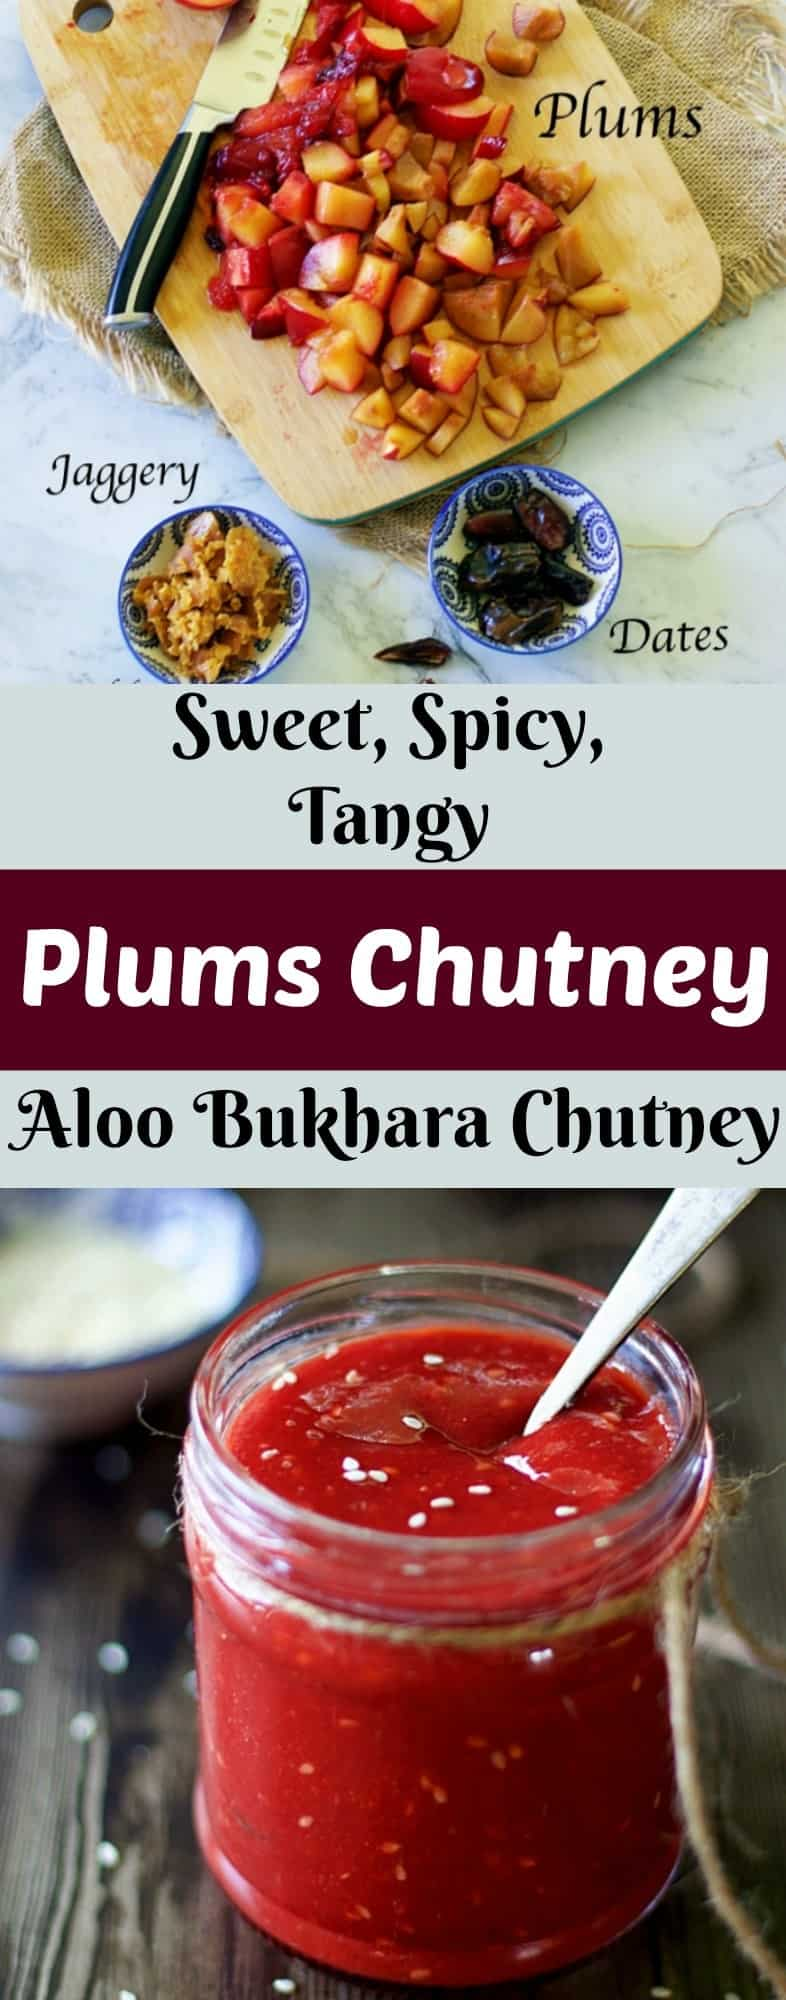 indian spiced plum chutney plums chutney sweet spicy tangy indian condiment best side dish for idli dosa phulka how to store chutney for 2 3 months fresh plum chutney plum jam plum photography indian chutney